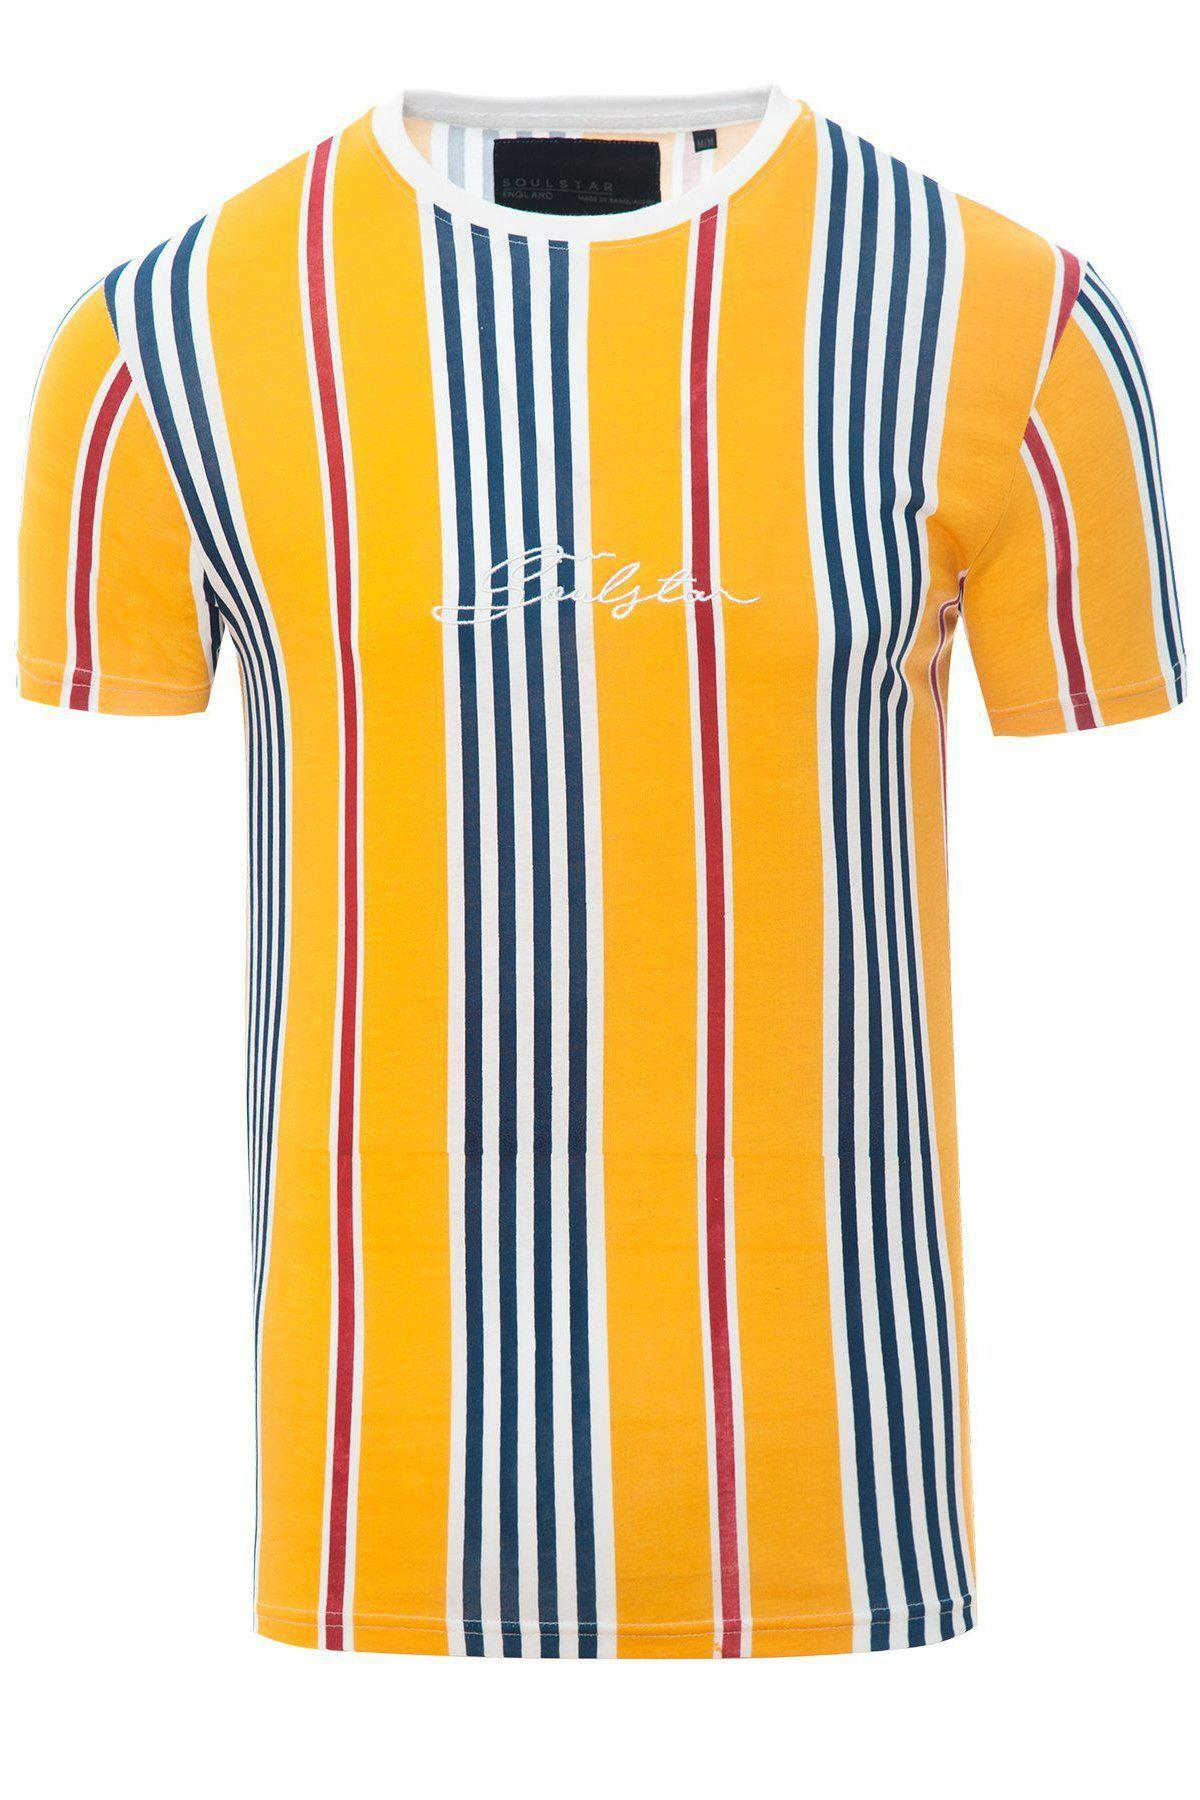 T-Shirts - 0 Stripe Signature T-Shirt Yellow